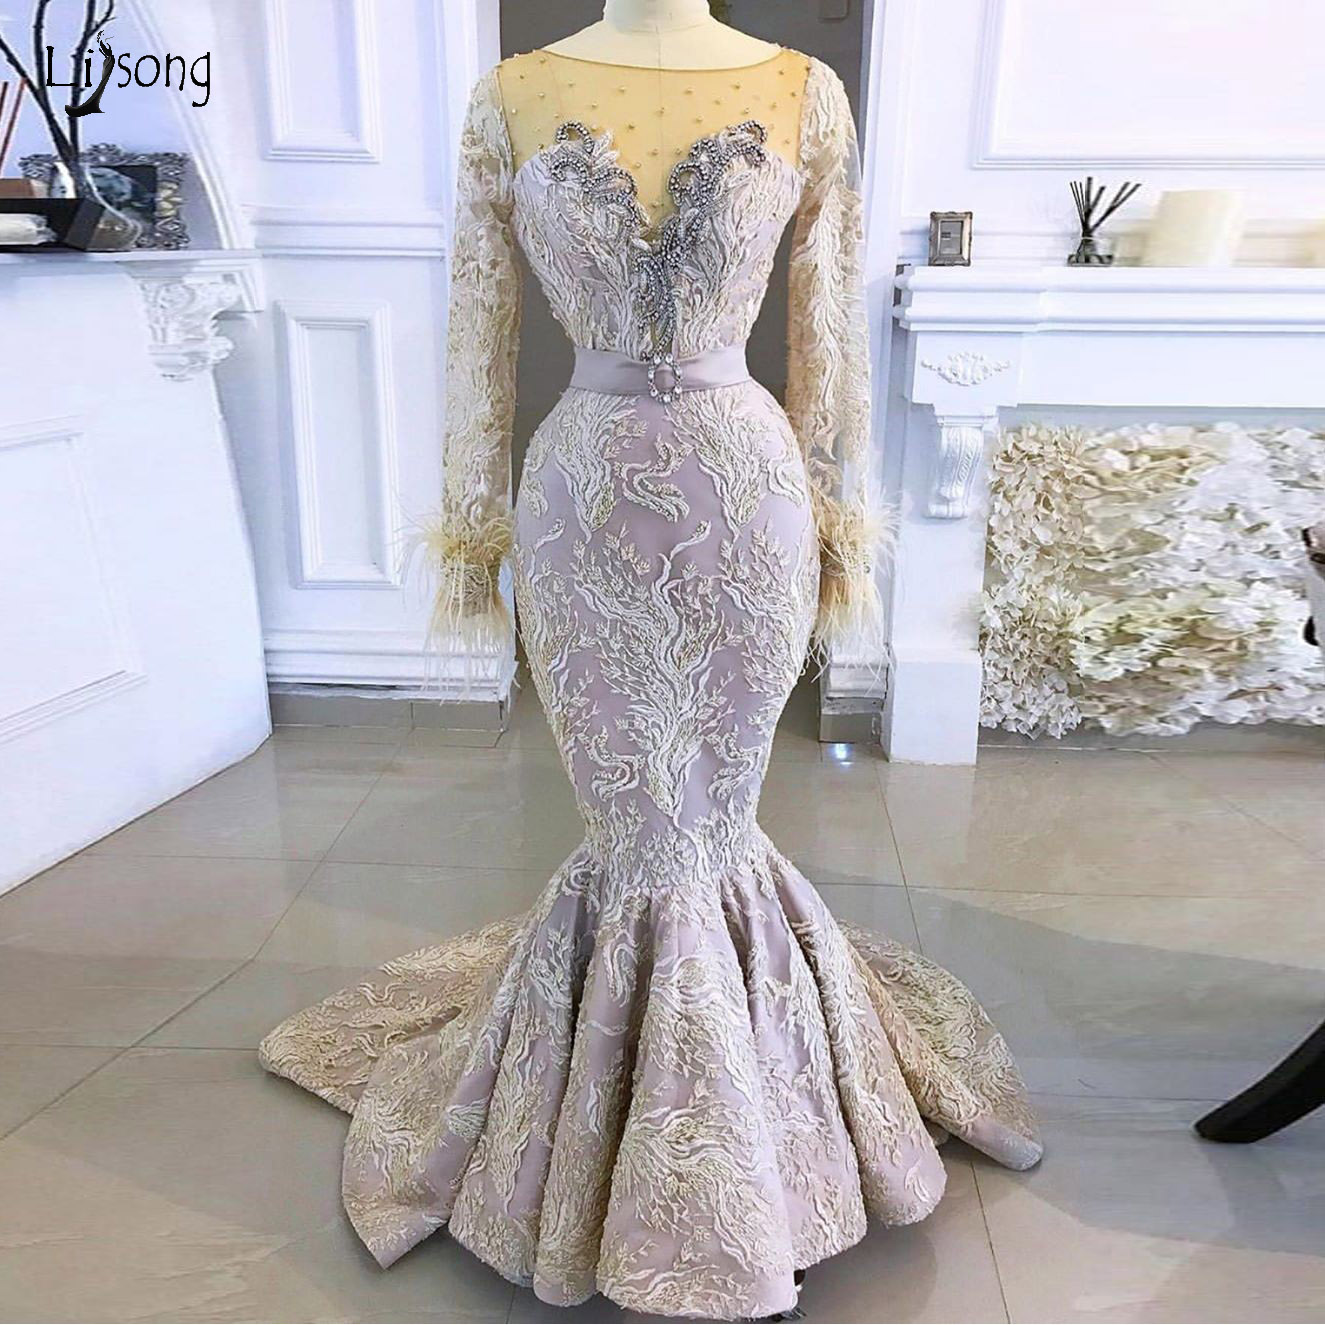 Elegant Lace Mermaid Evening Dresses Full Sleeves Beaded Feather Long Prom Gowns Crystal Formal Party Dresses Robe De Soiree